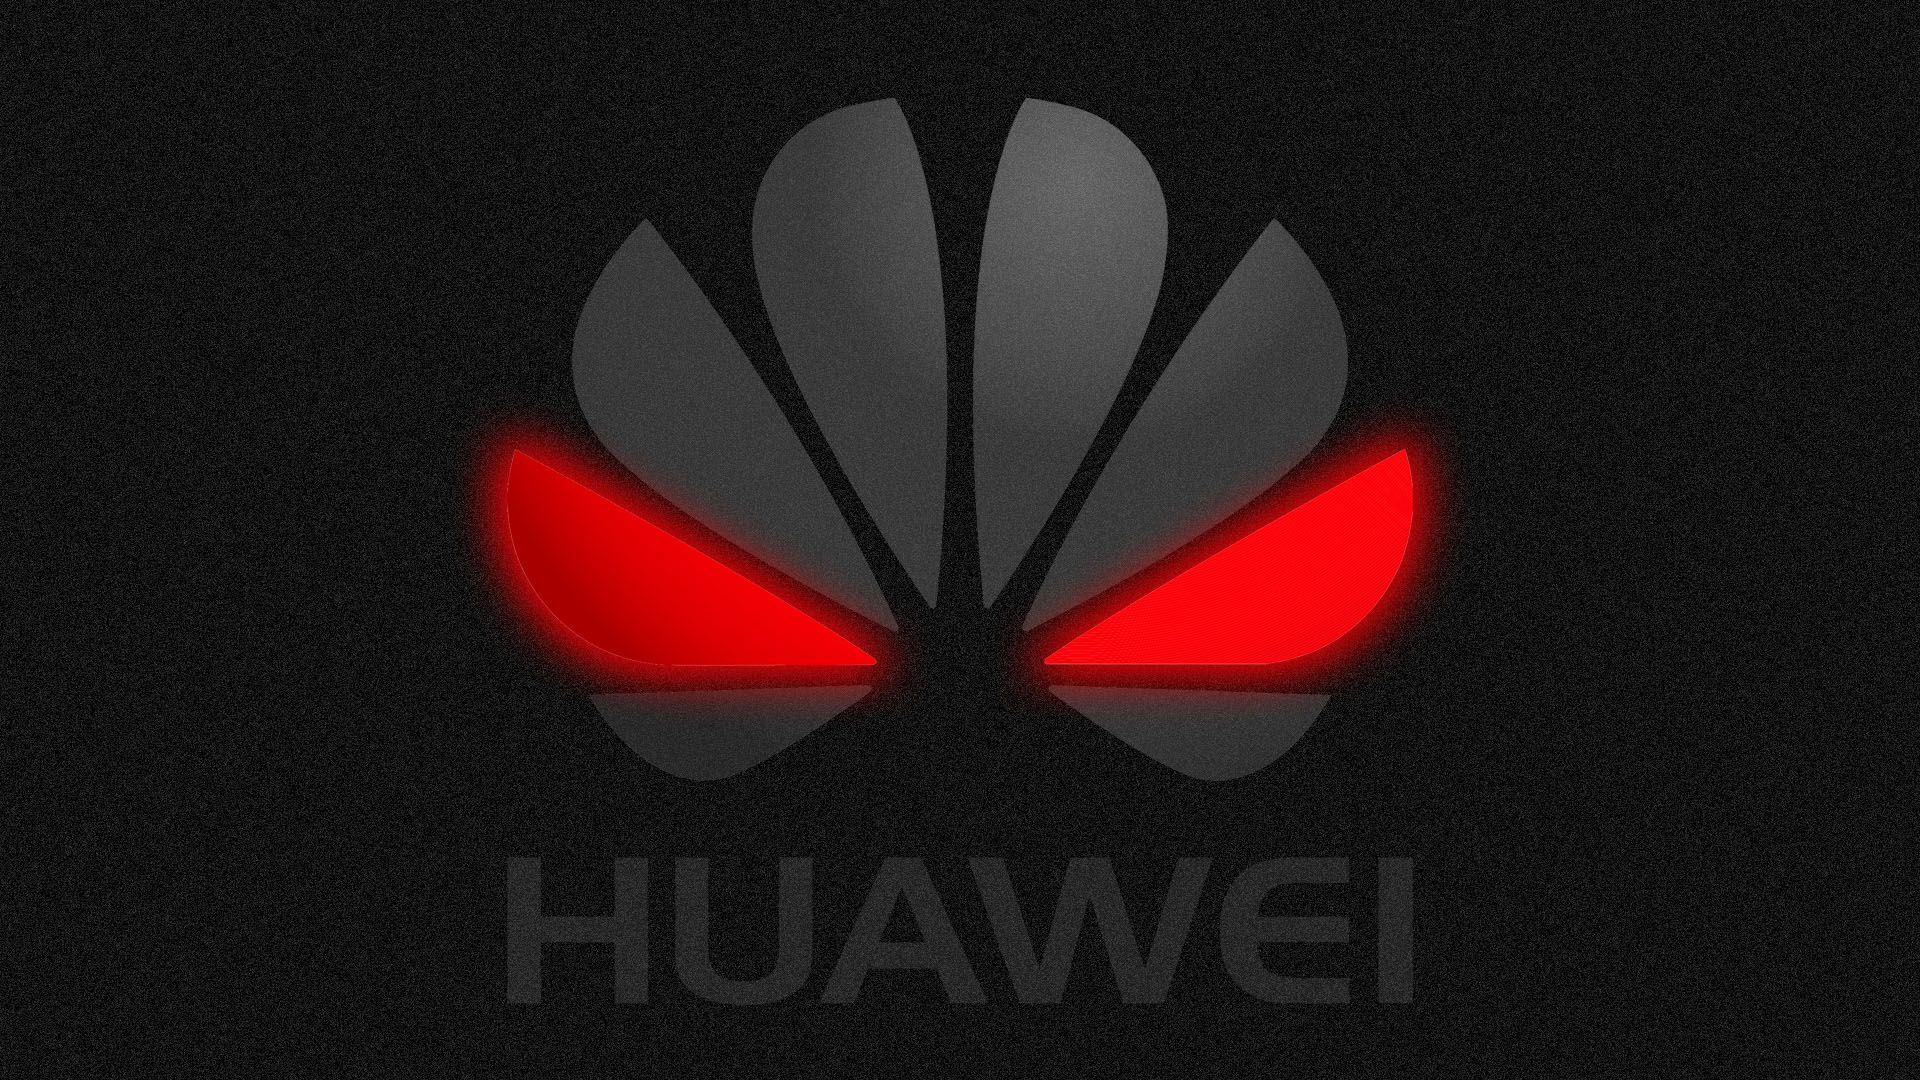 Why Huawei is the United States' 5G boogeyman - Axios